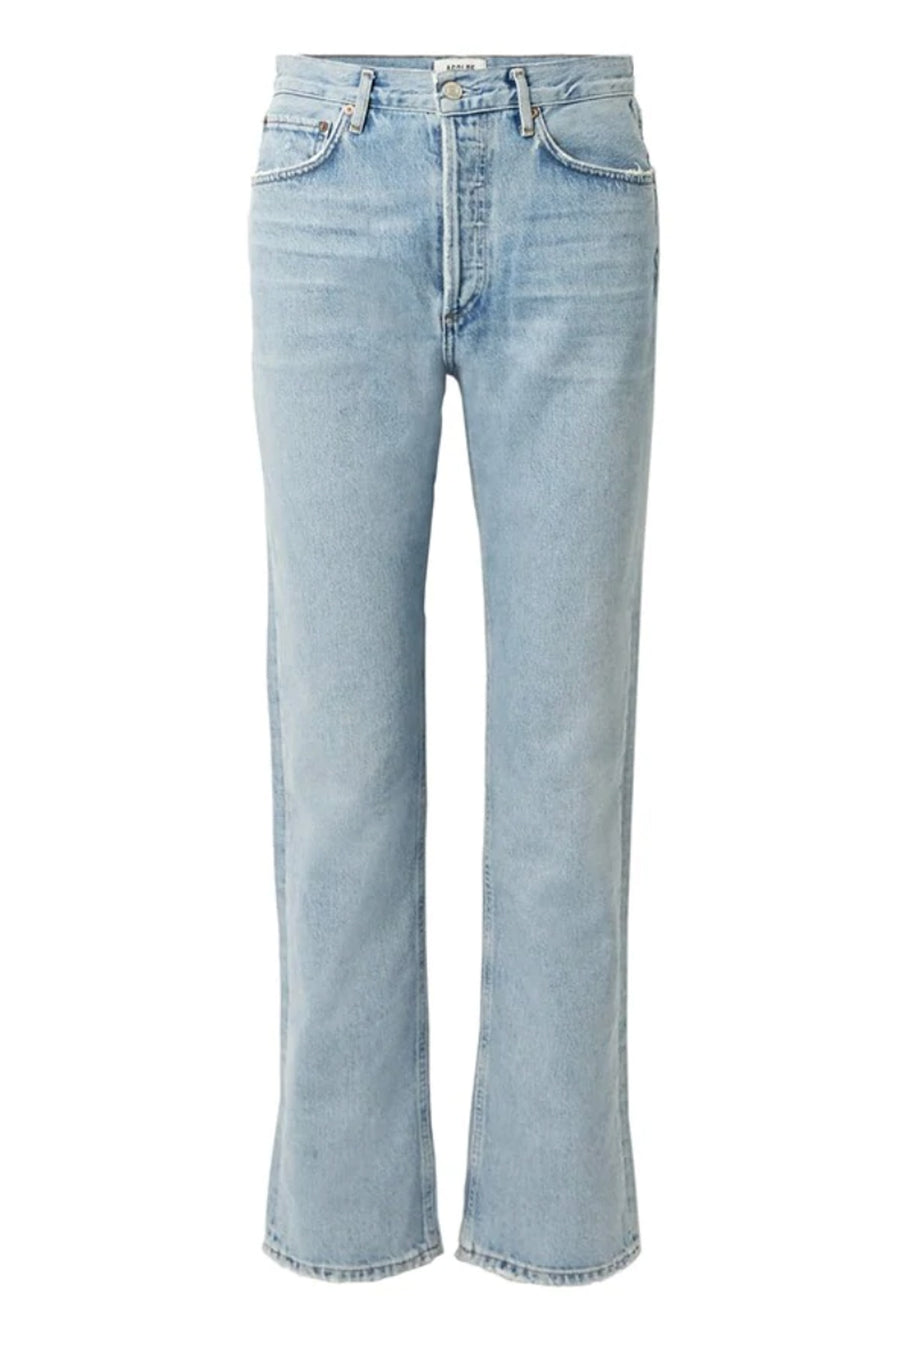 Agolde Lana Vintage Straight Jean in Riptide from The New Trend